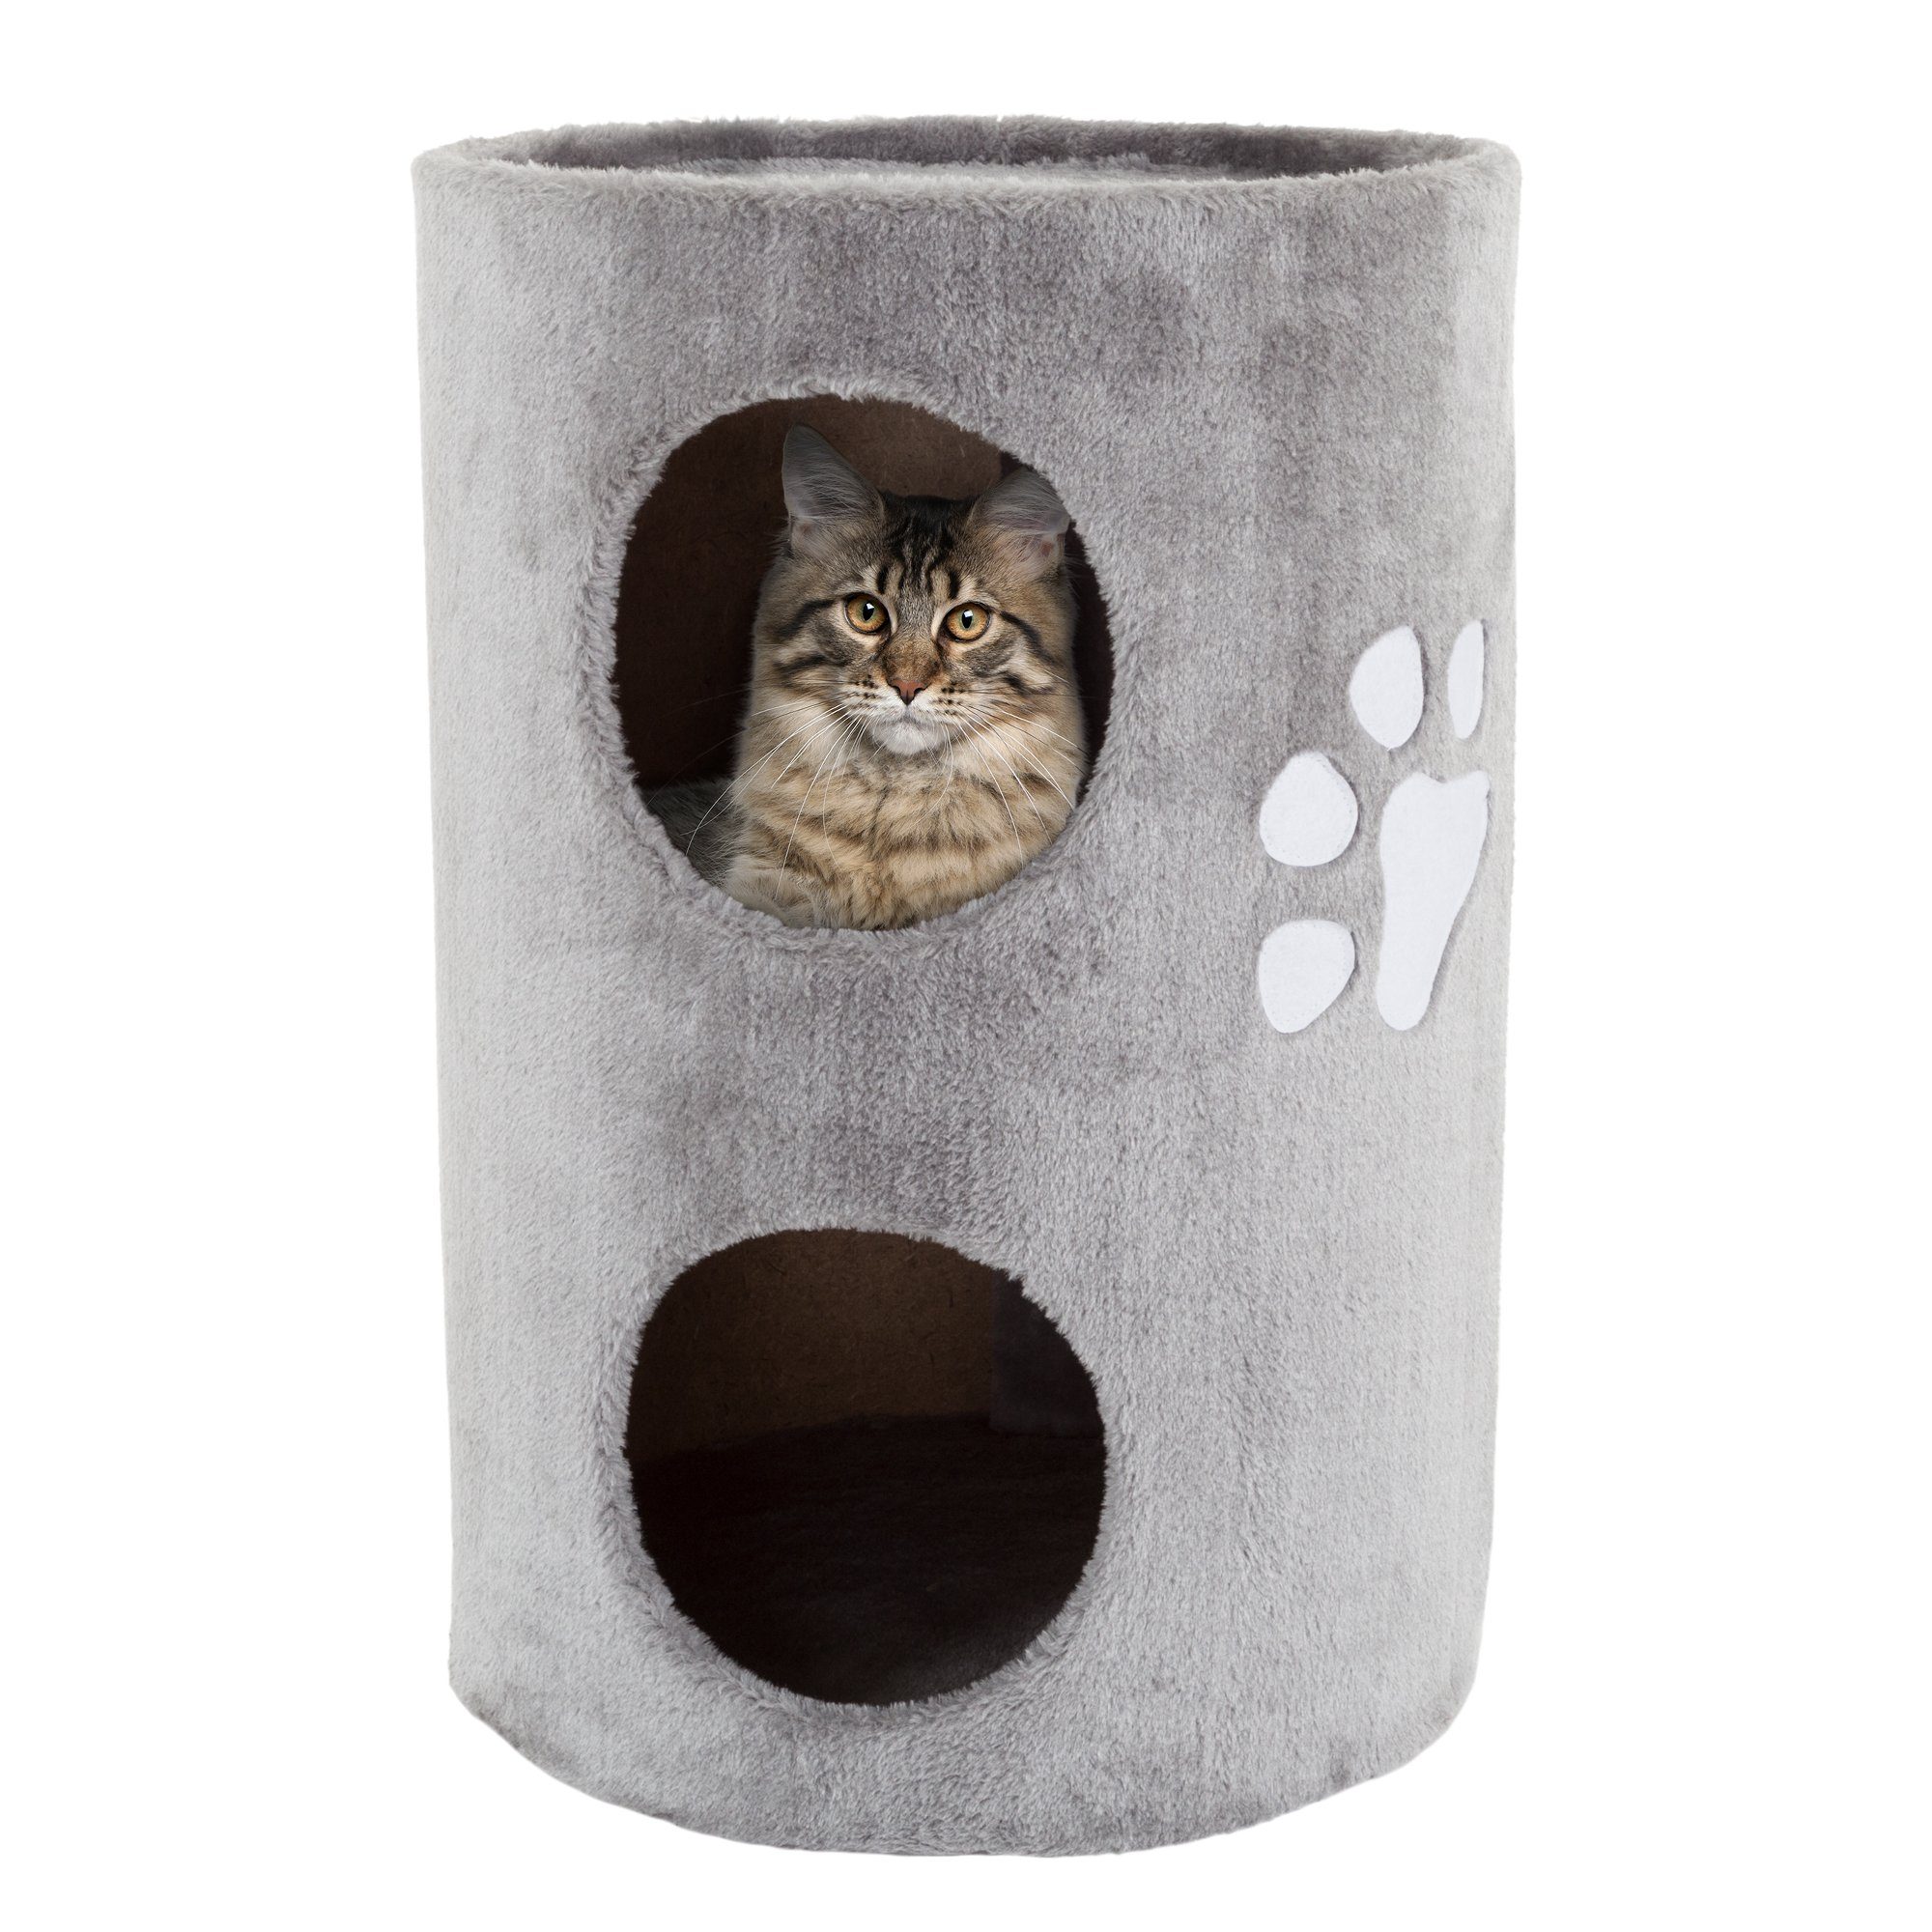 PETMAKER Cat Condo 2 Story Double Hole with Scratching Surface, 14'' x 20.5'', Gray by PETMAKER